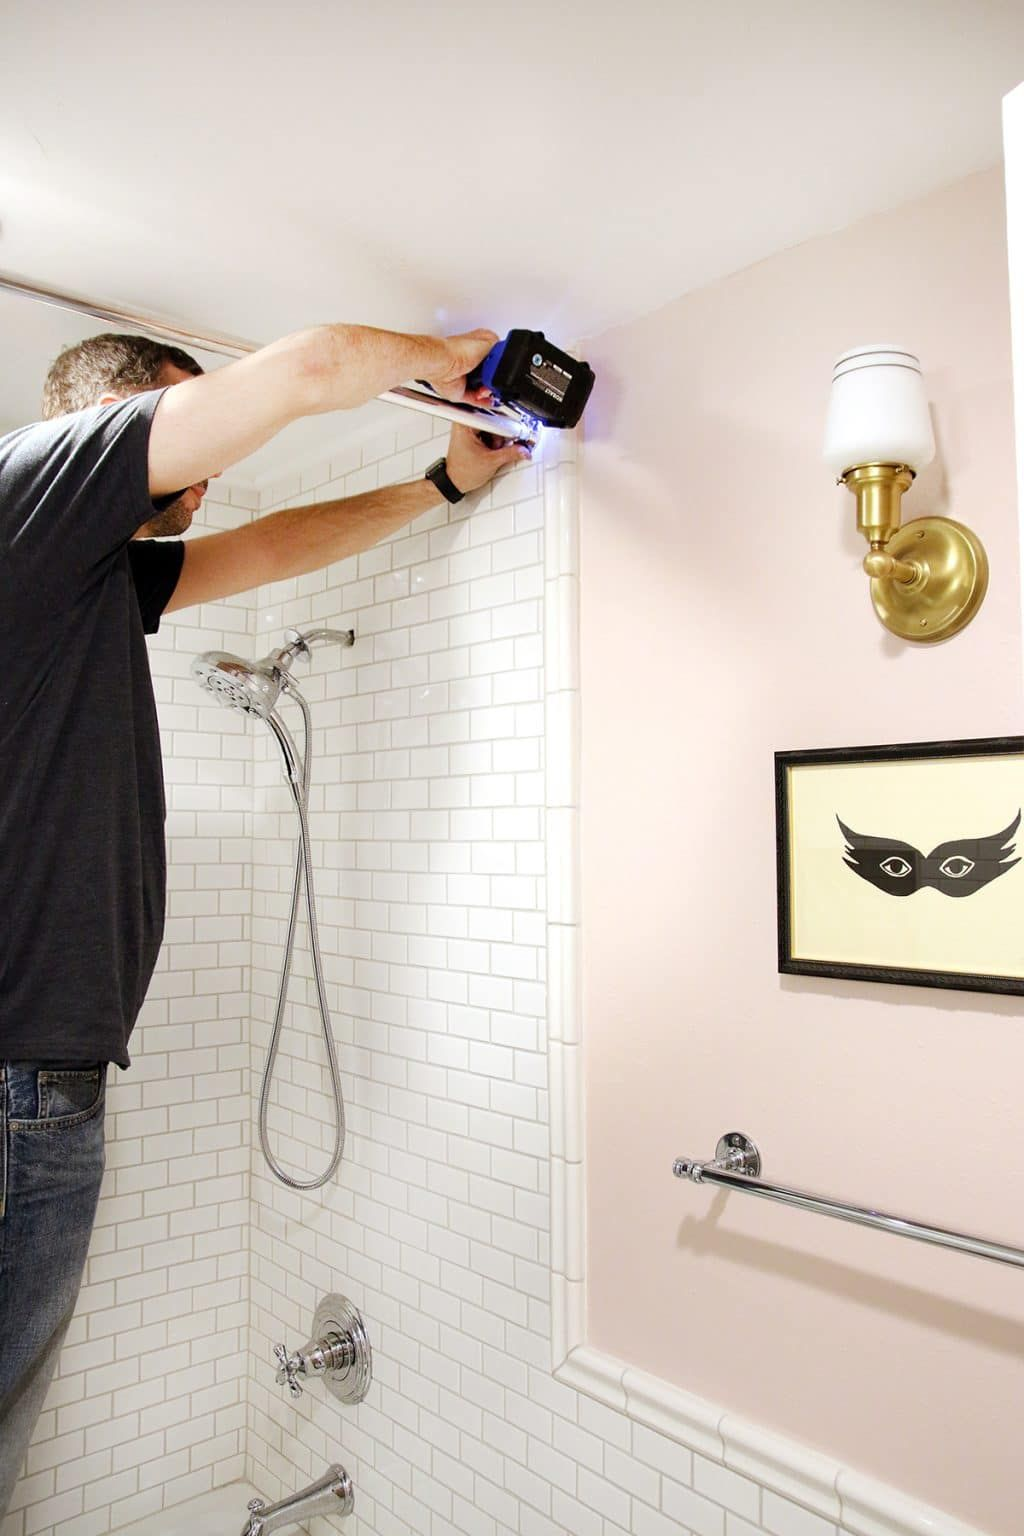 How to drill into tile to hang a shower curtain bathroom